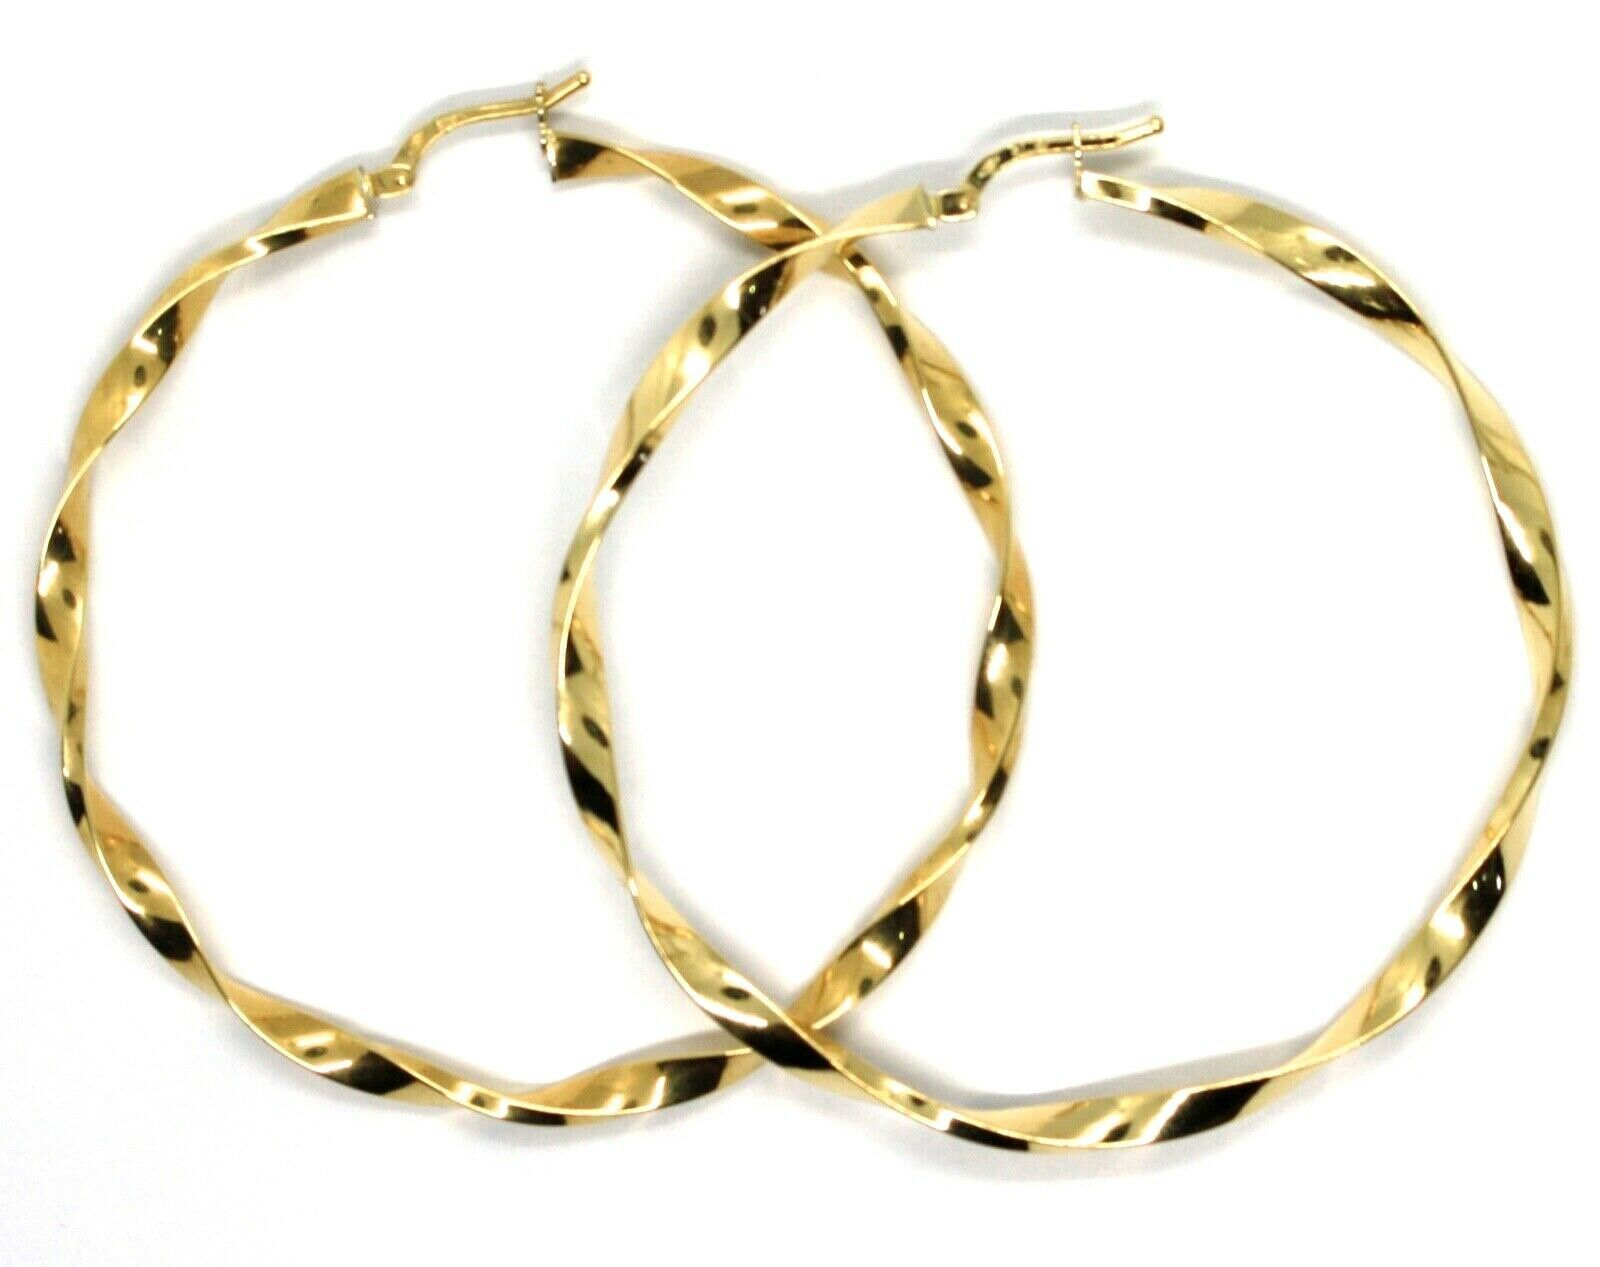 18K YELLOW GOLD BIG CIRCLE HOOPS FACETED BRAID ROPE EARRINGS 55 MM x 3 MM, ITALY